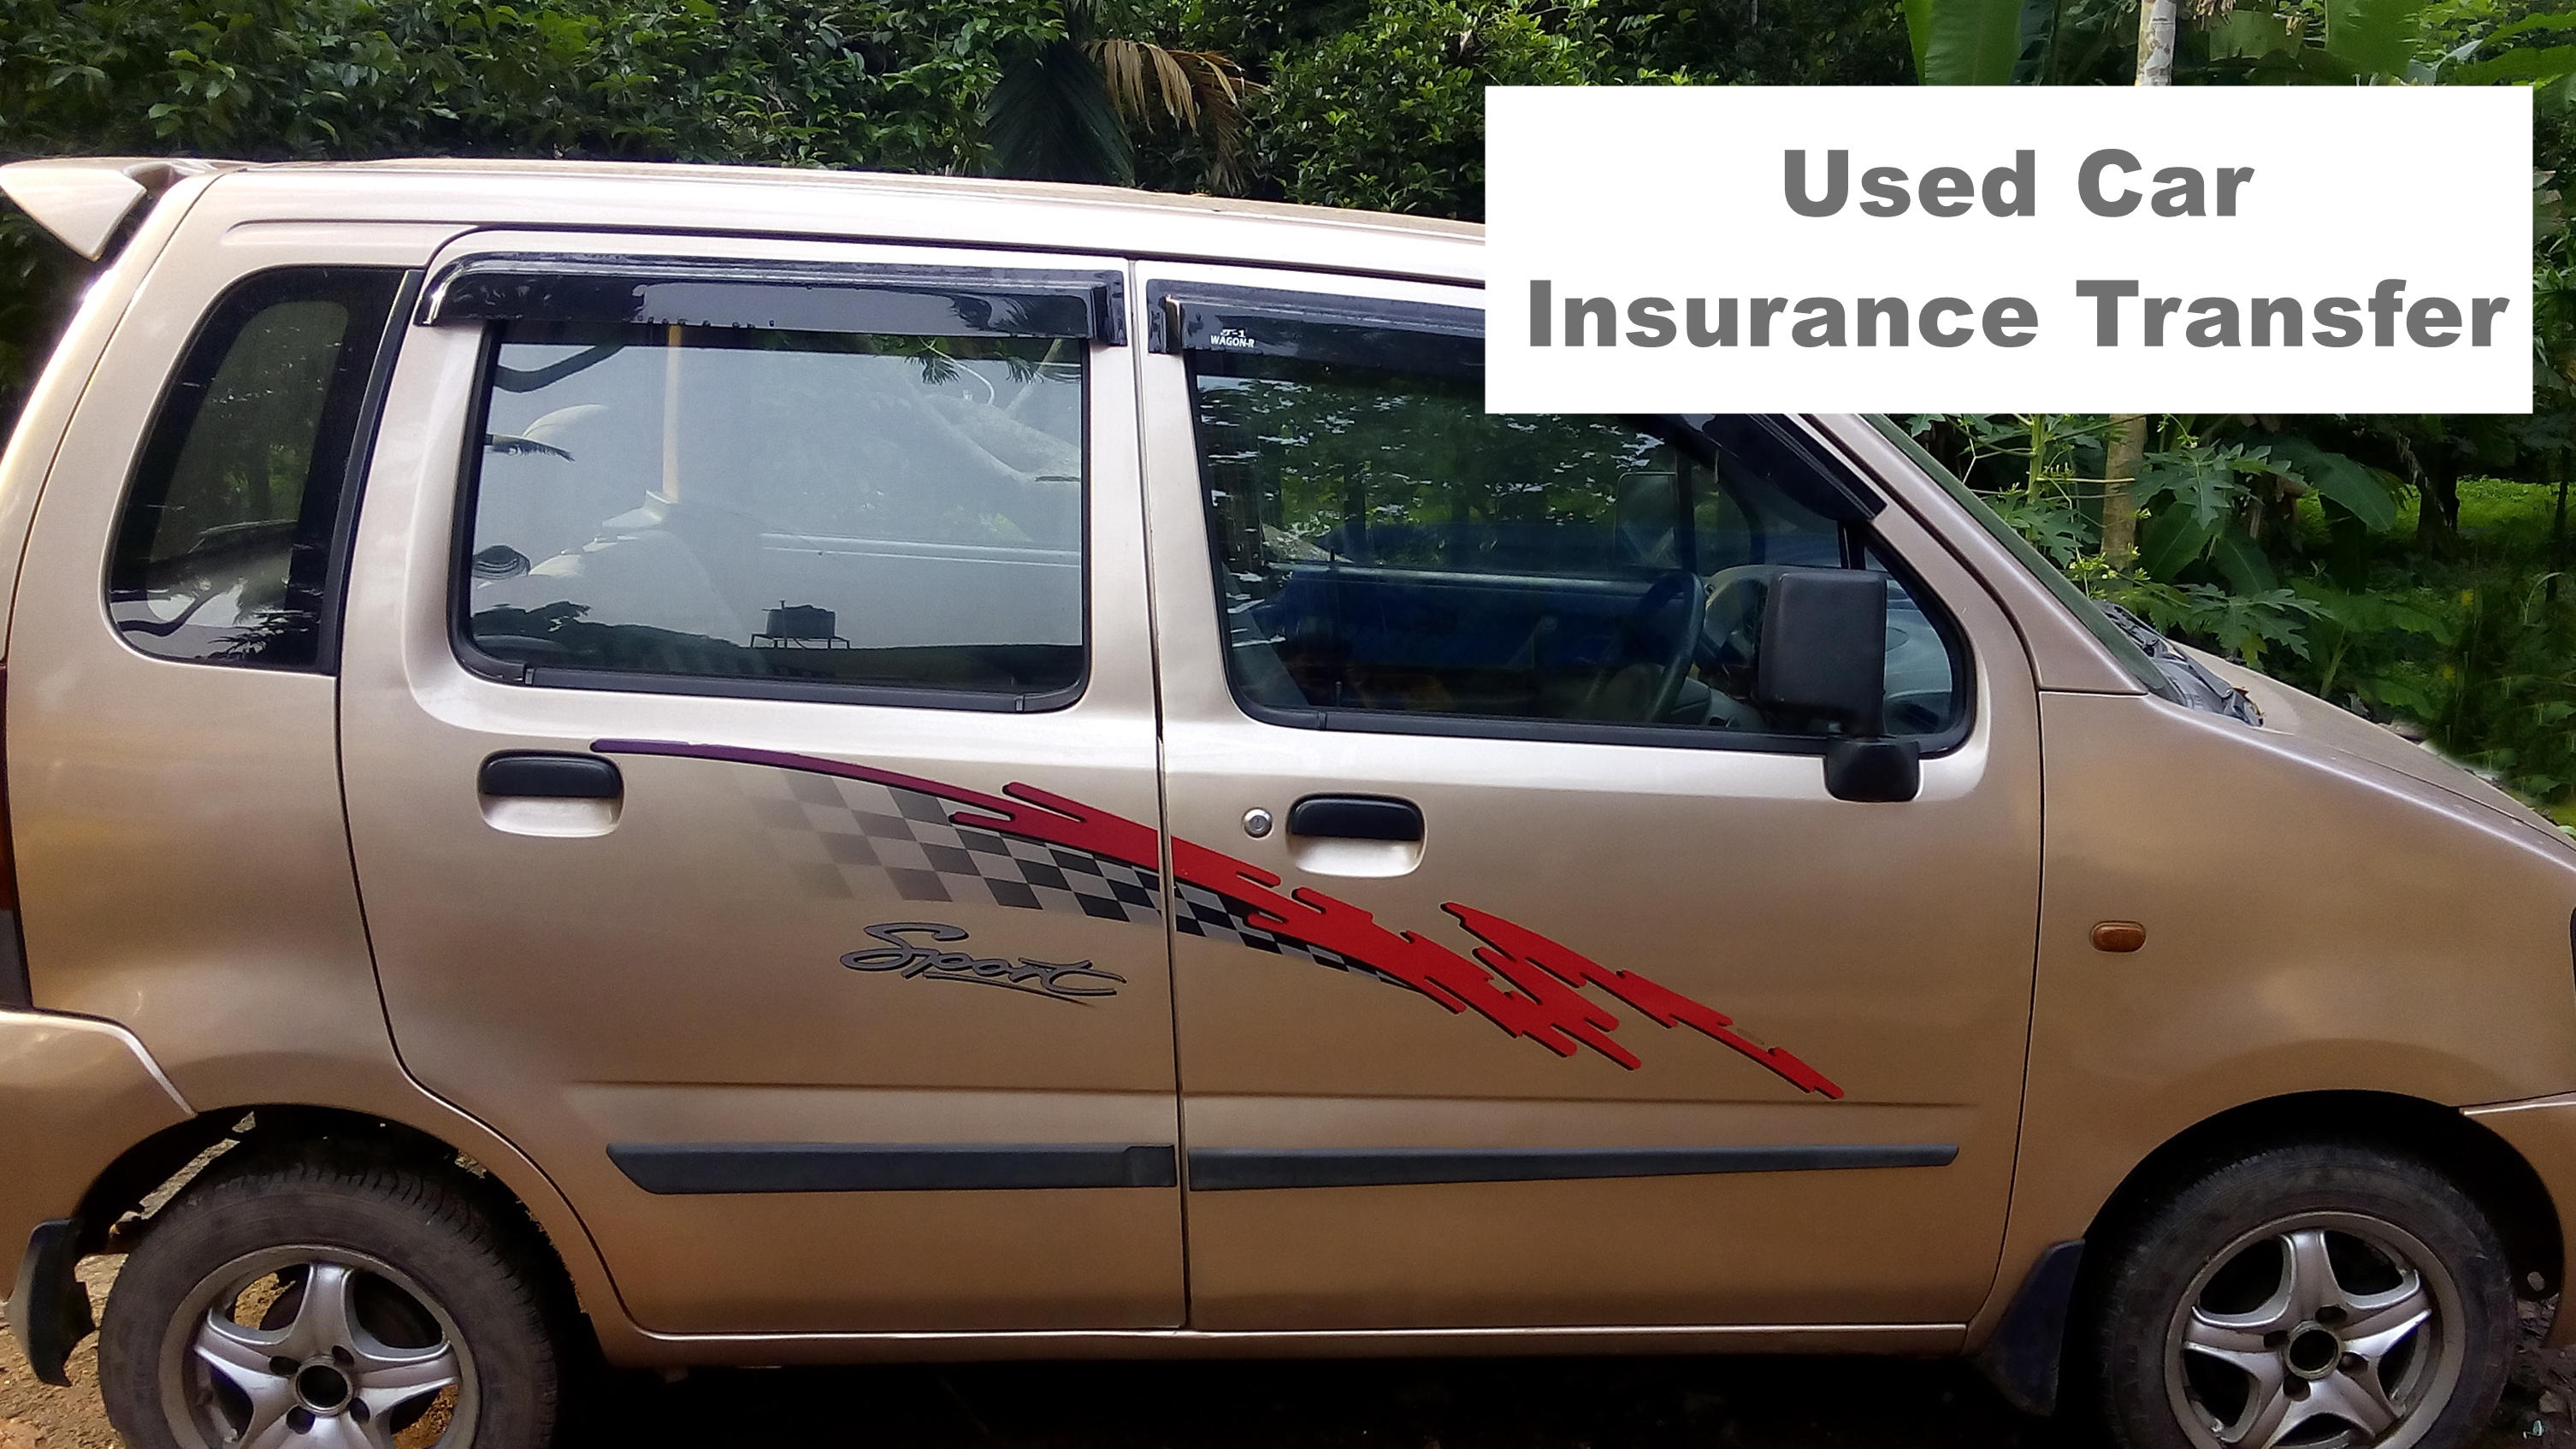 All you need to know about Car Insurance Transfer Process